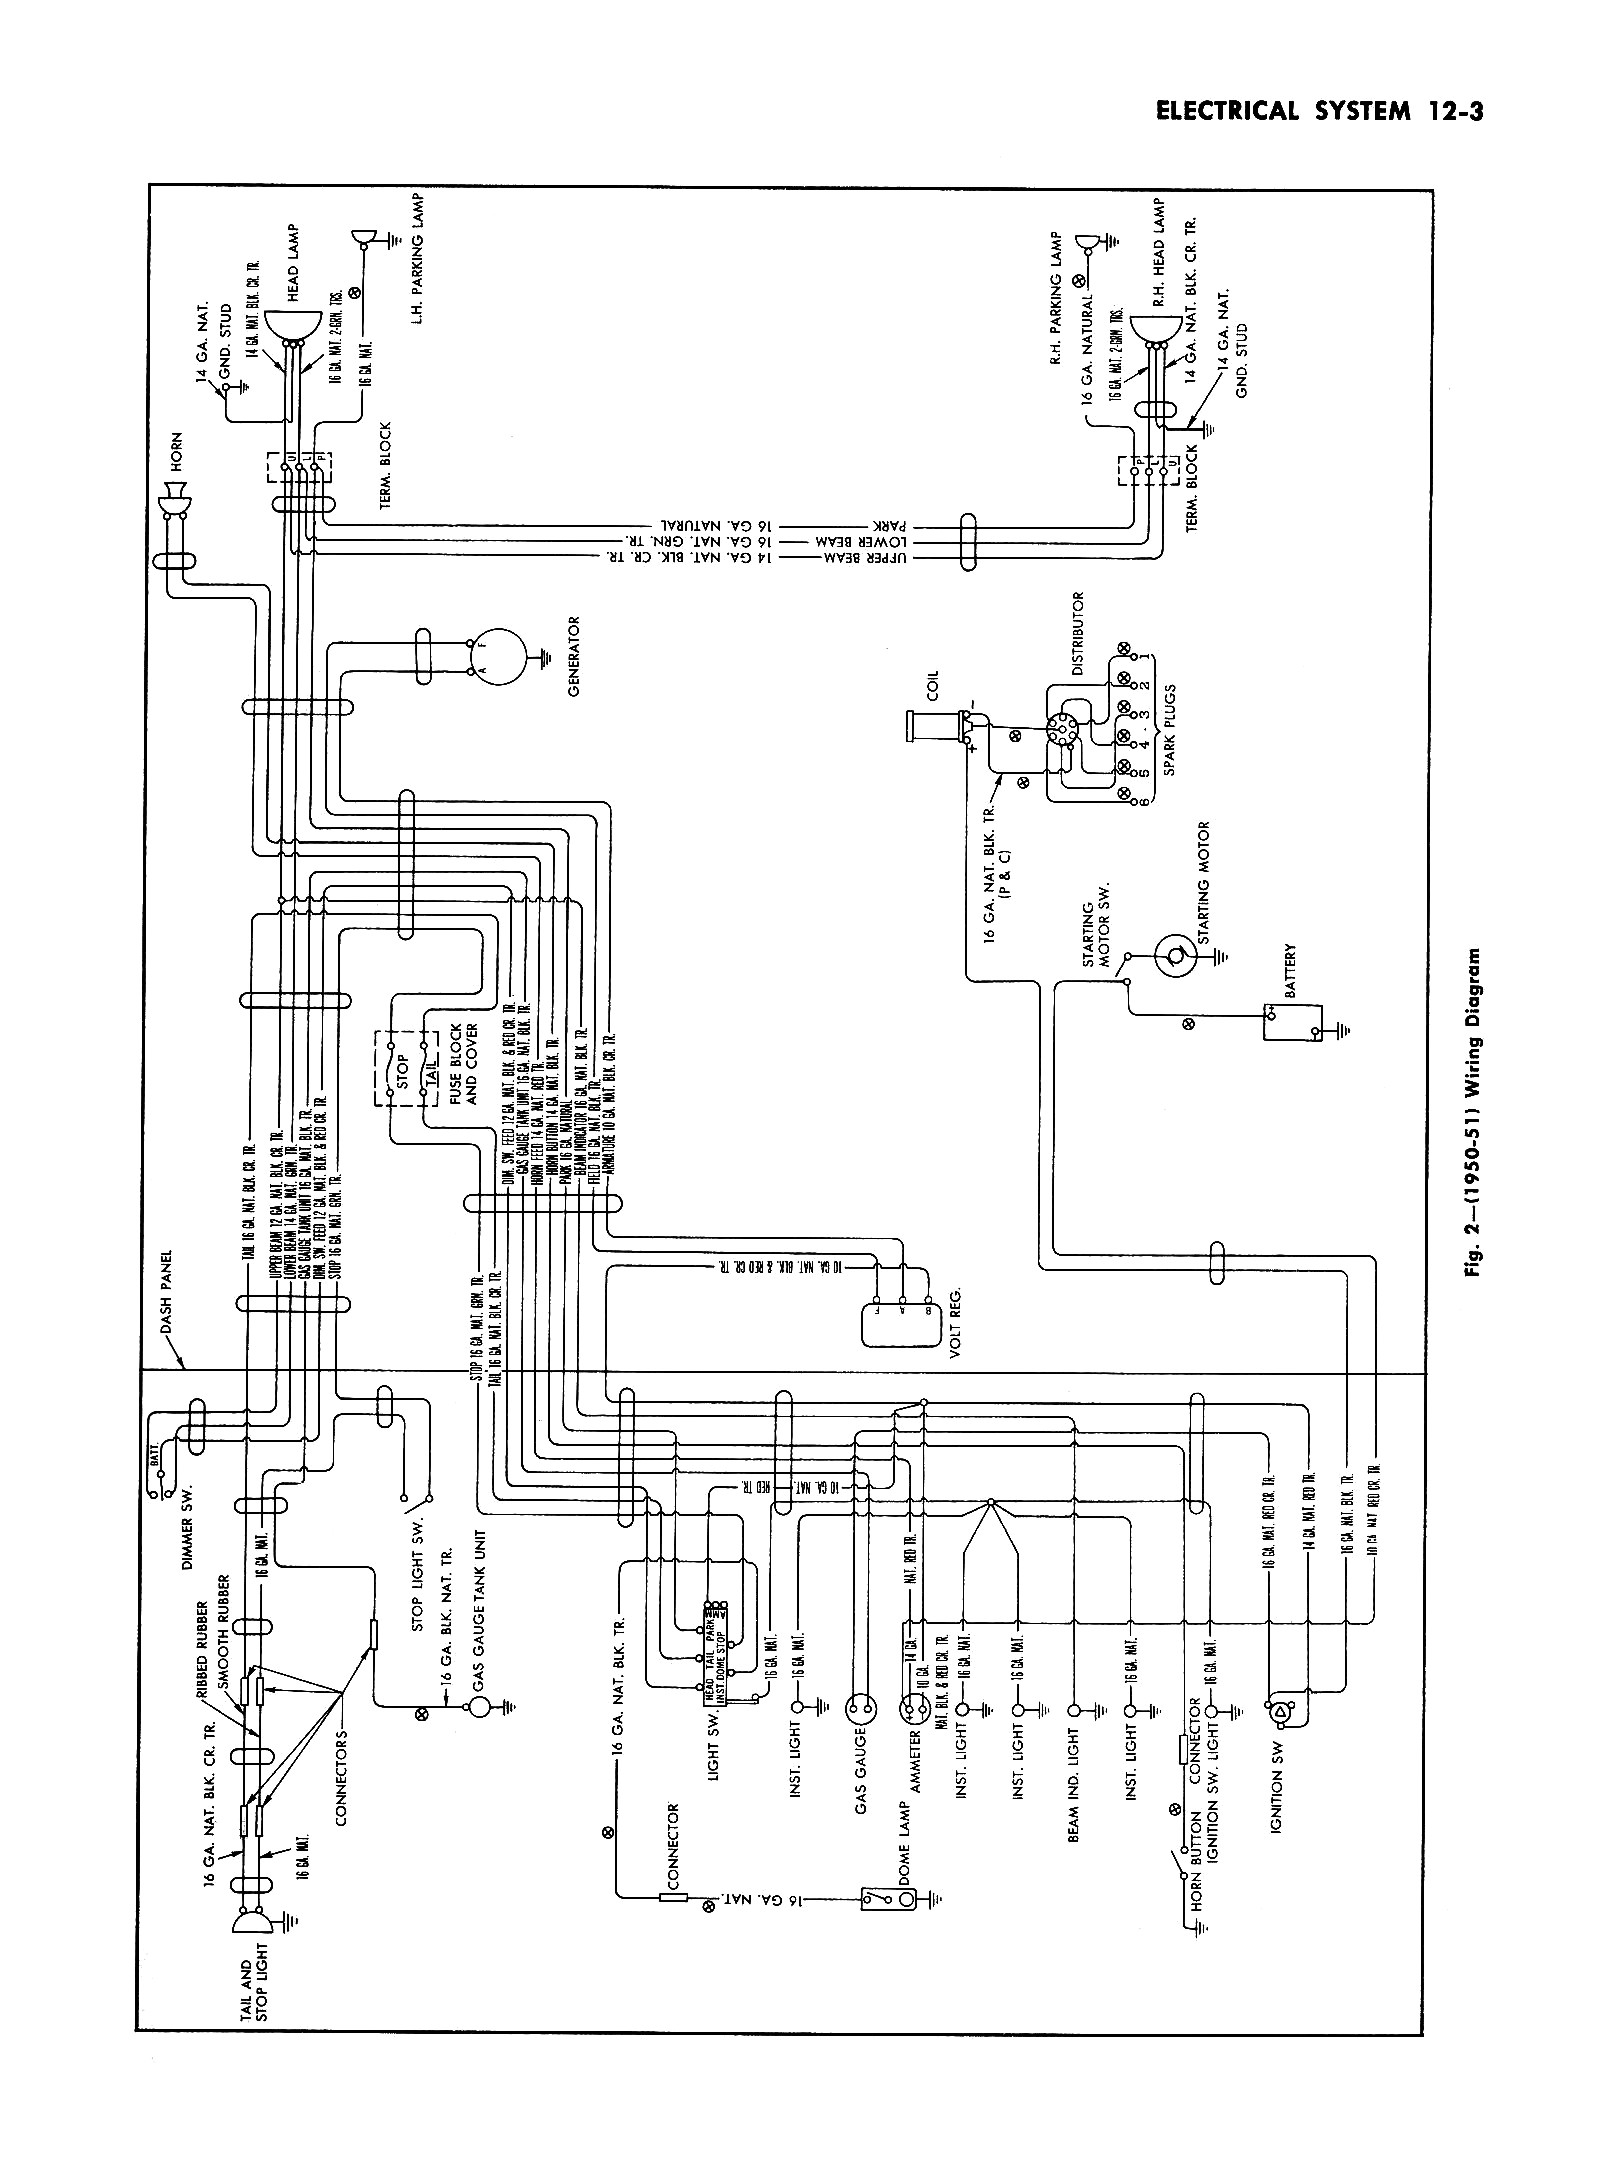 1958 chevy apache wiring diagram 1959 chevy apache wiring diagram - wiring diagram